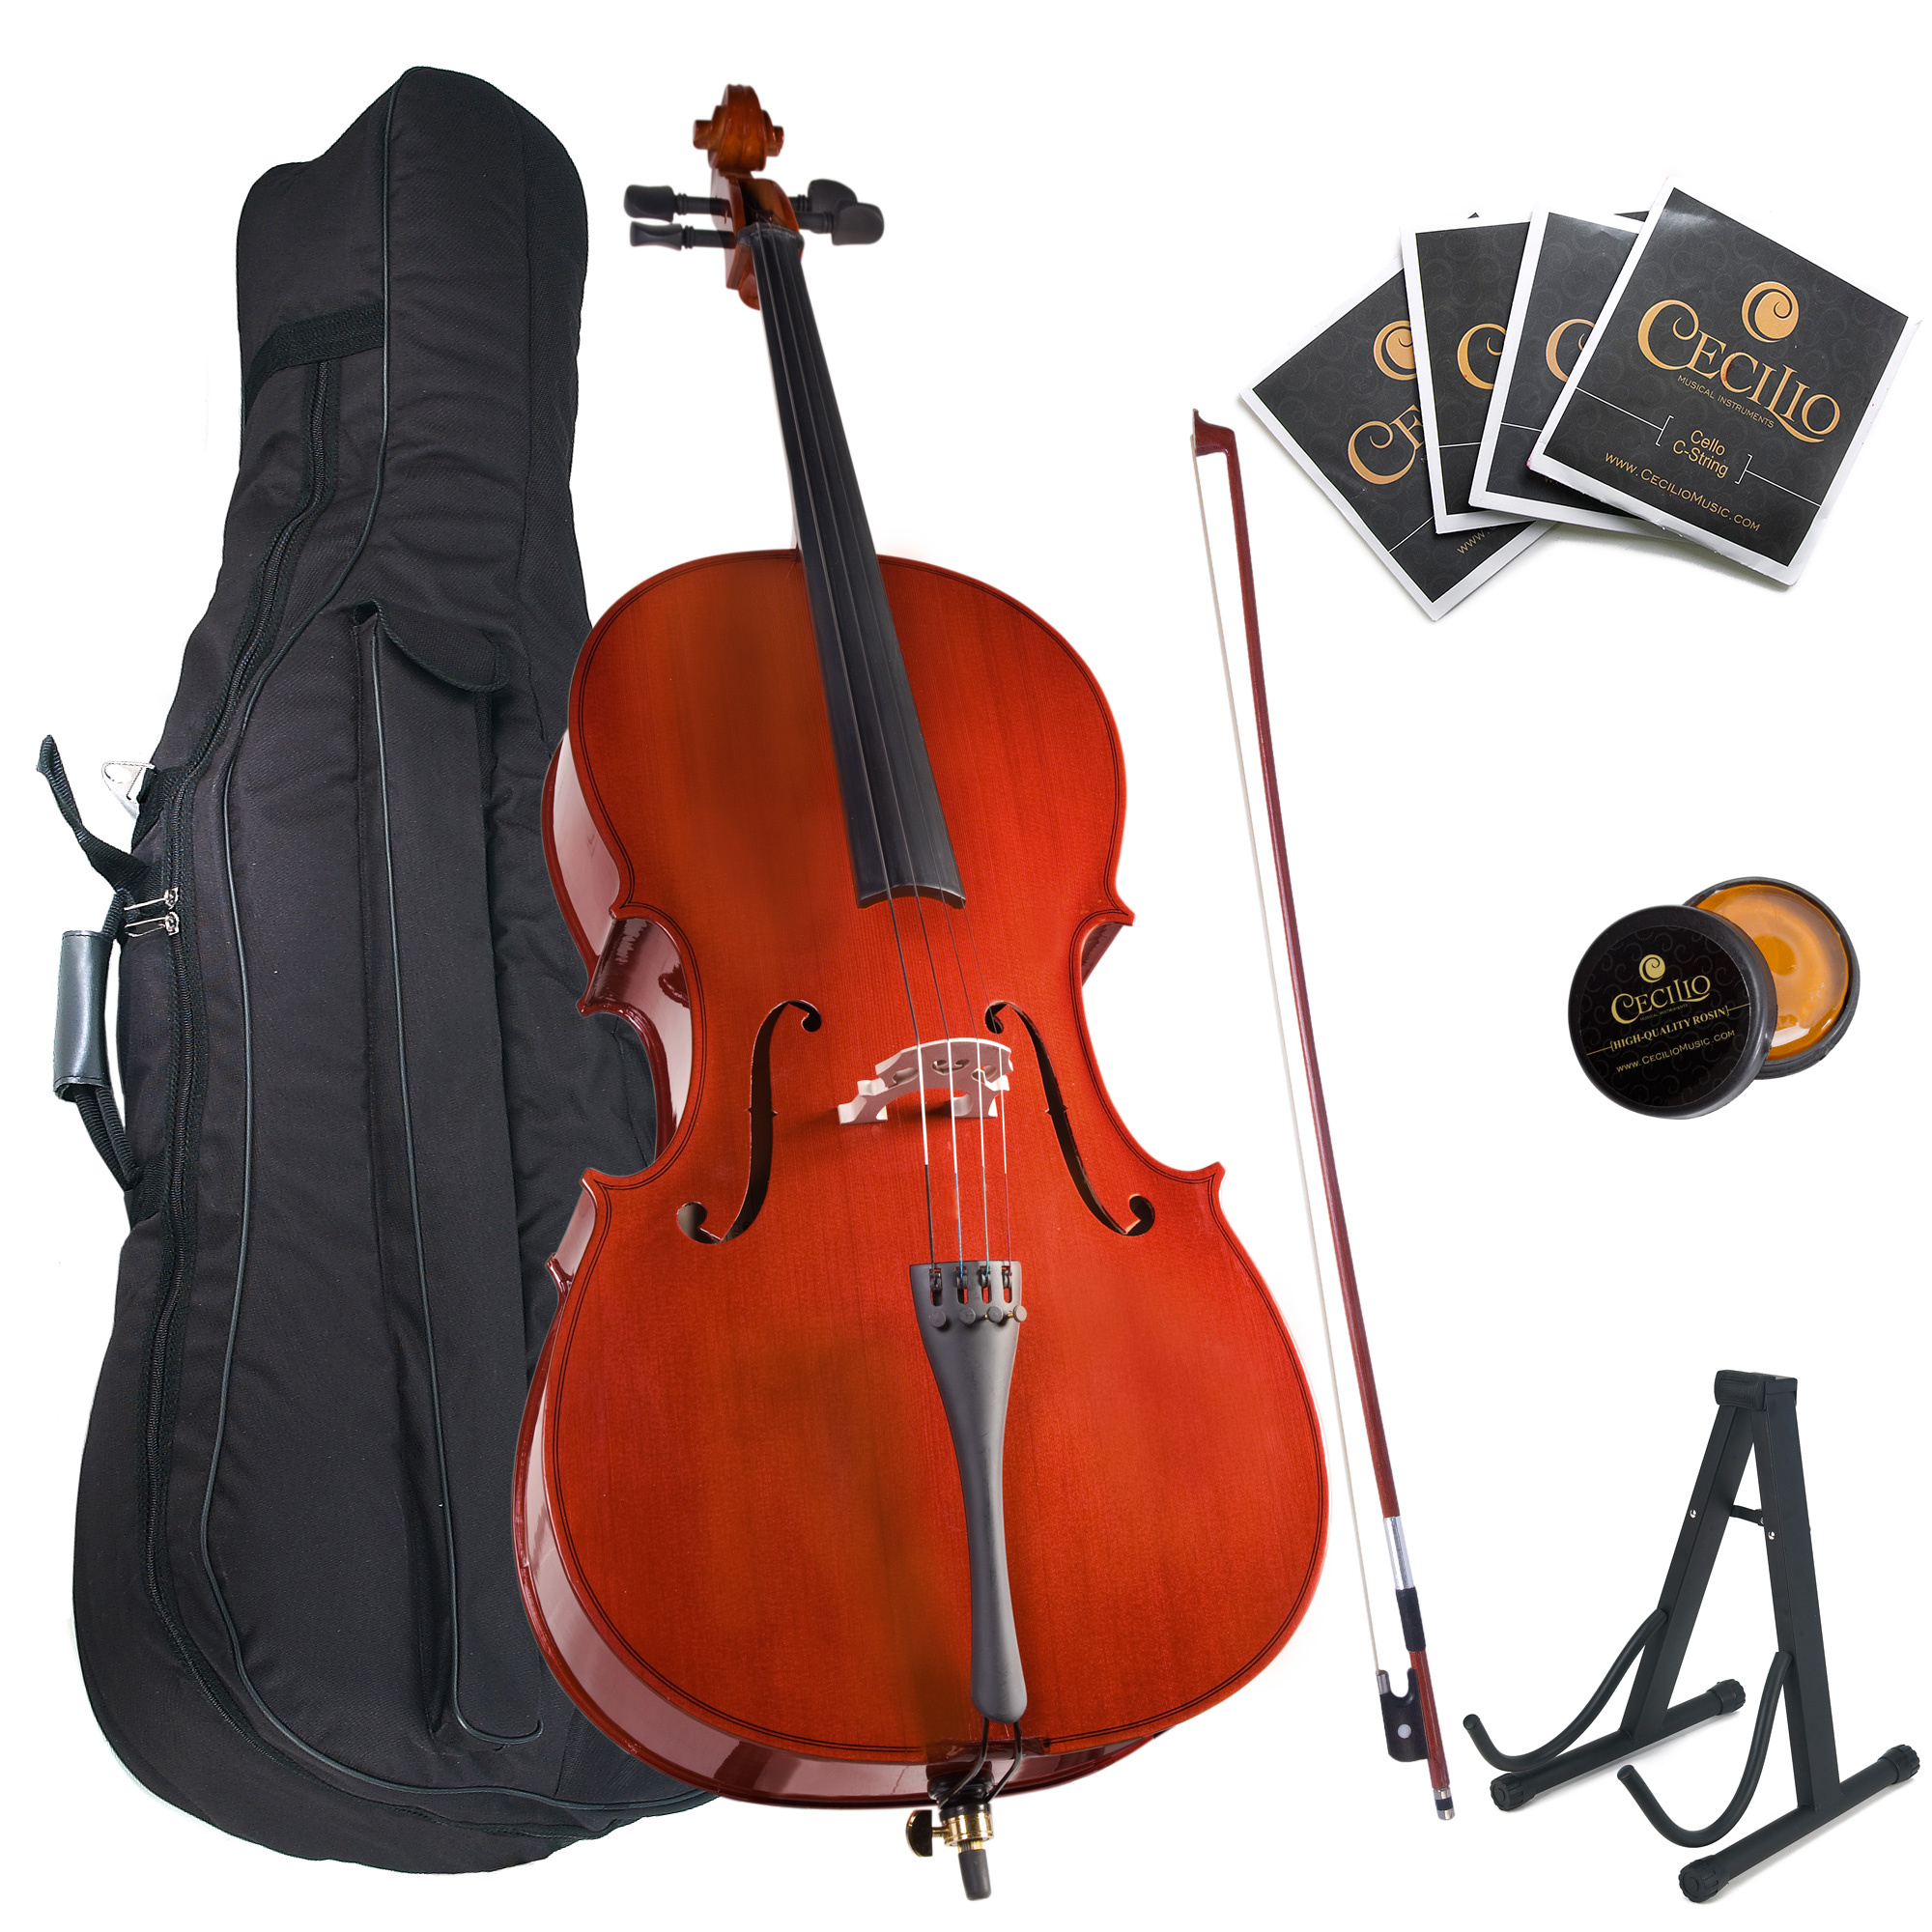 Cecilio Full Size 4/4 CCO-100 Student Cello Pack w/1 Year Warranty, Stand, Extra